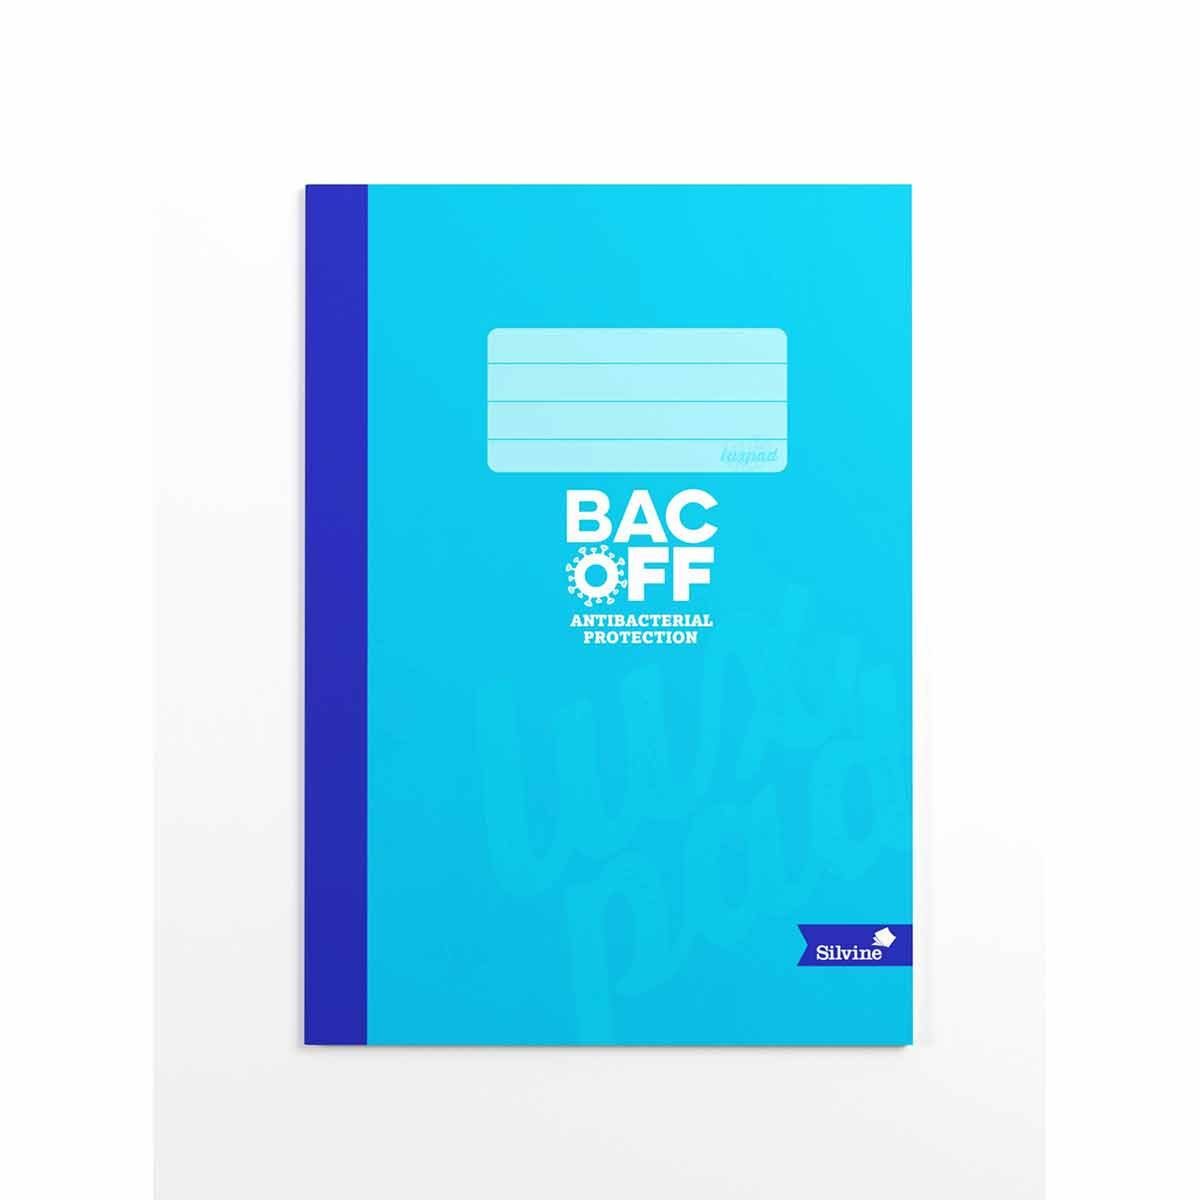 Silvine Luxpad BACOFF Notebook A4 Ruled 80 Pages Assorted